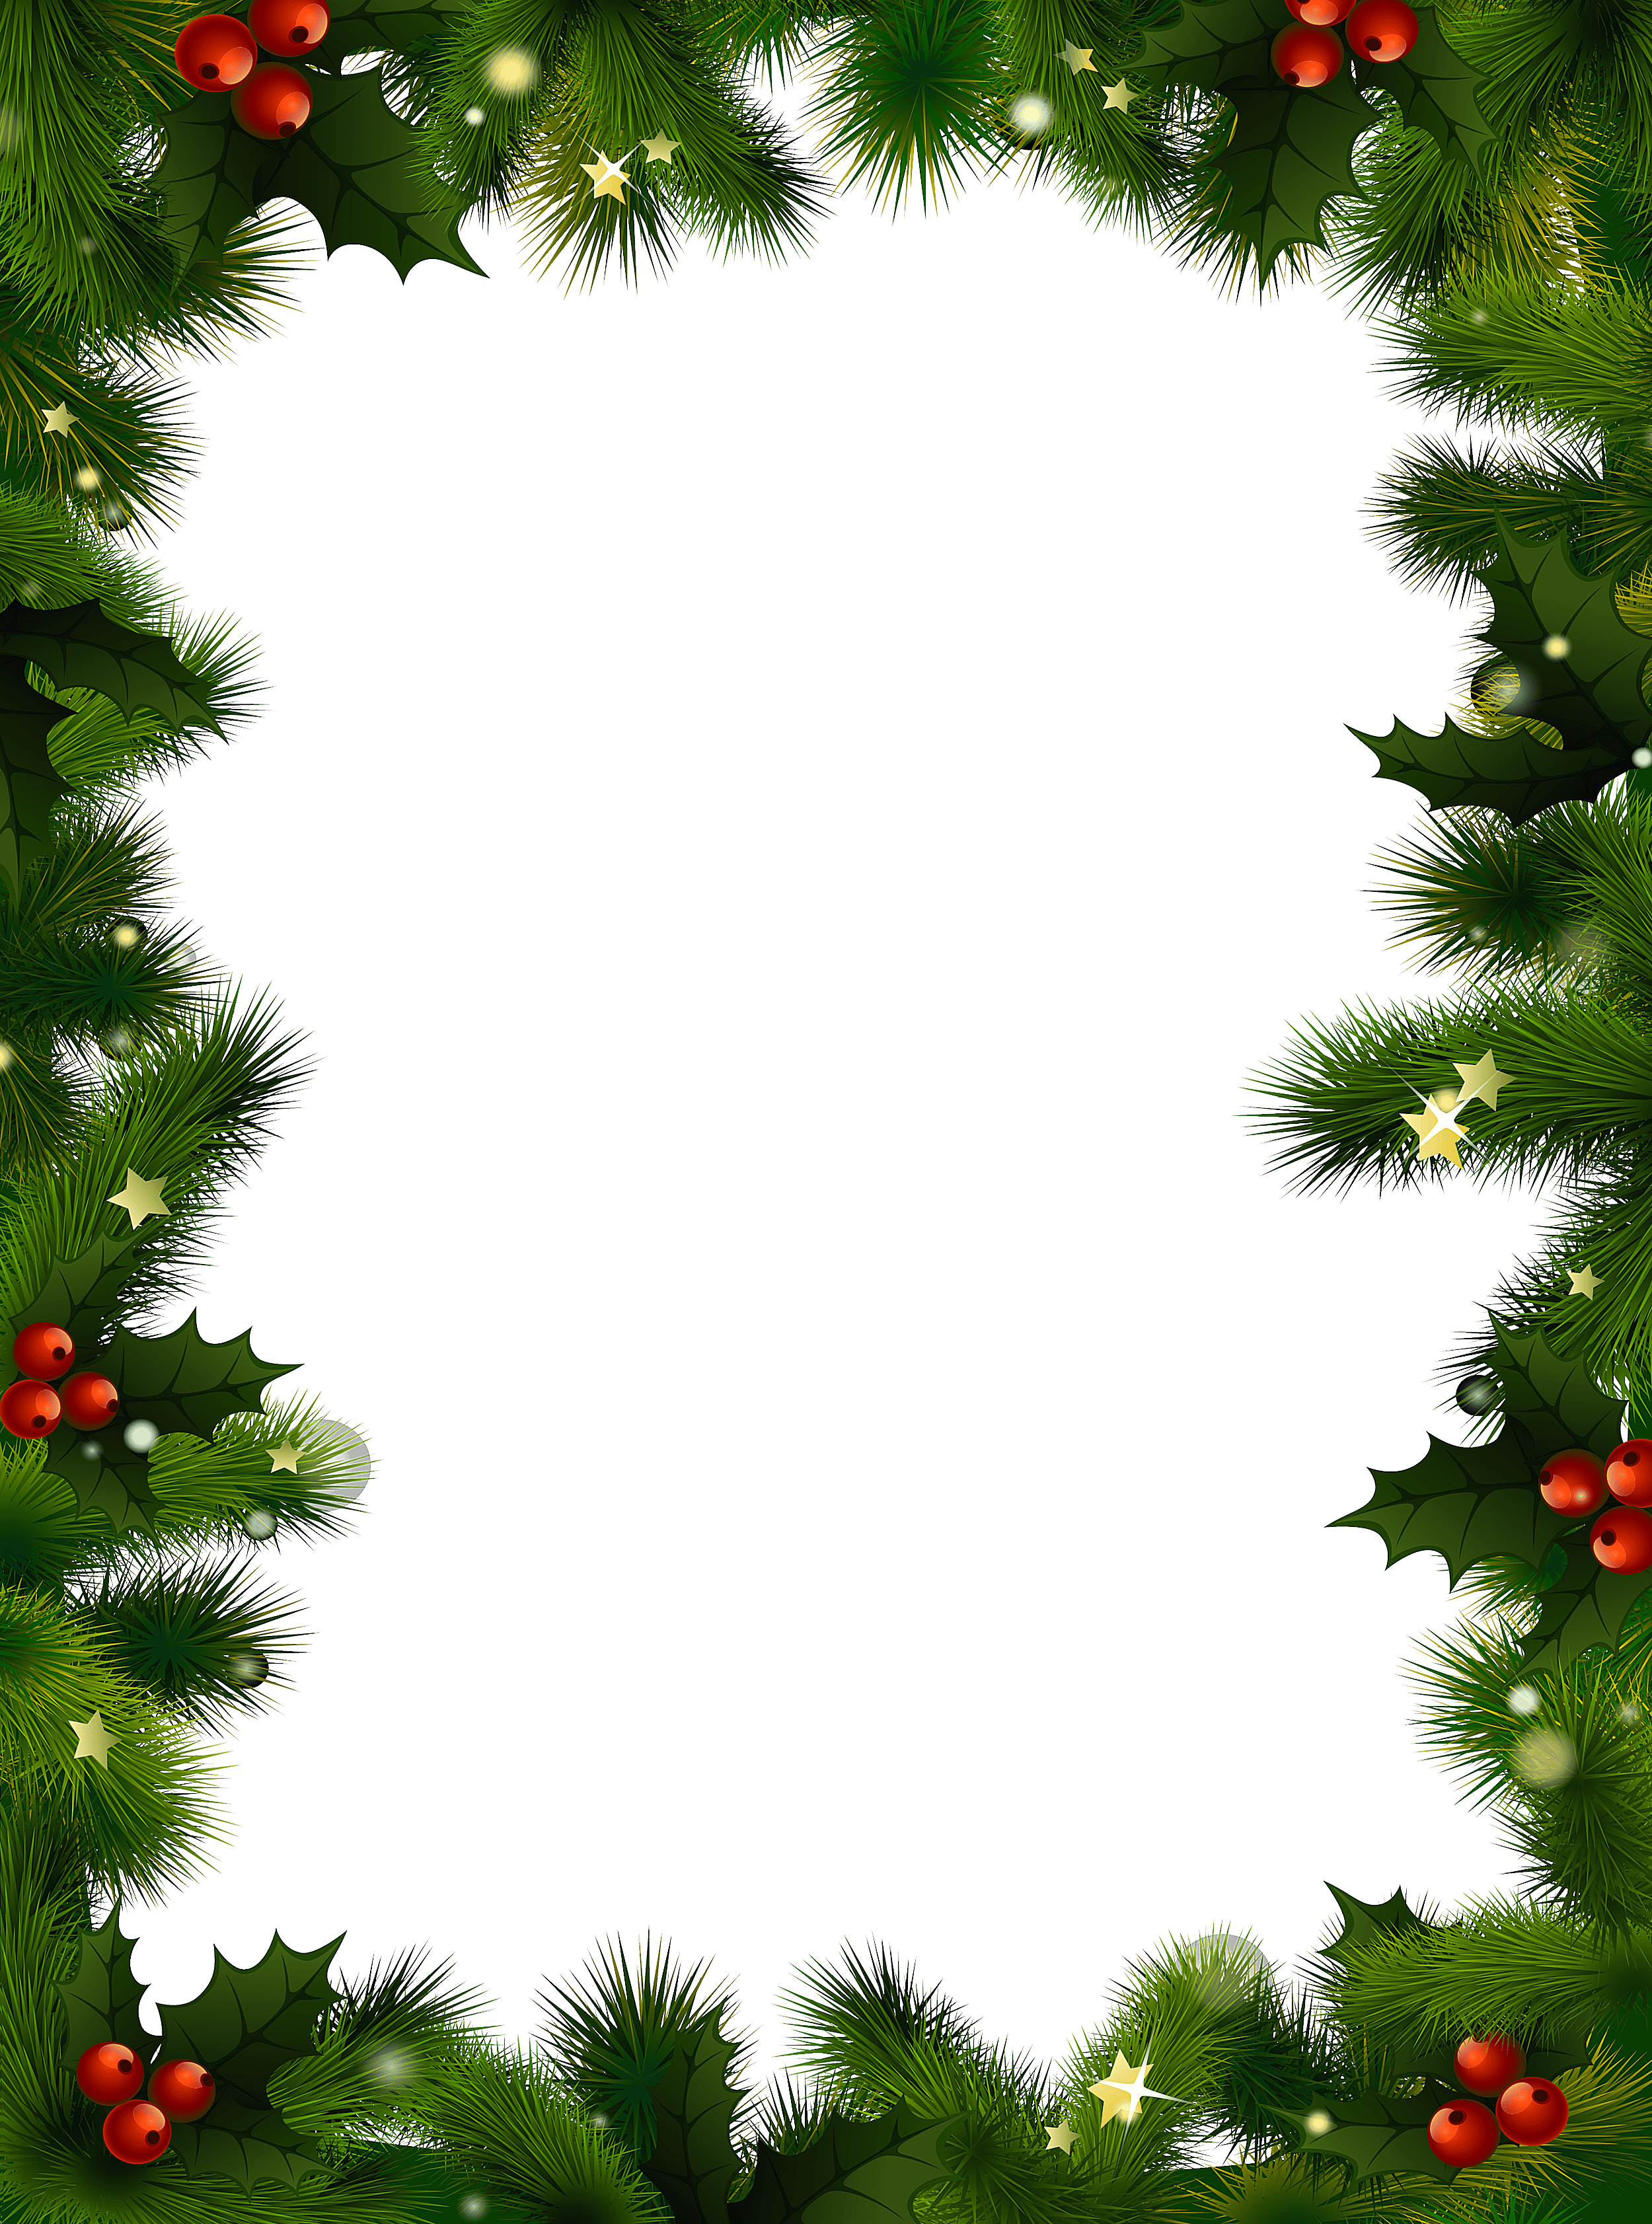 Frame pictures fast lunchrock. Free christmas photo frames and borders png banner library library